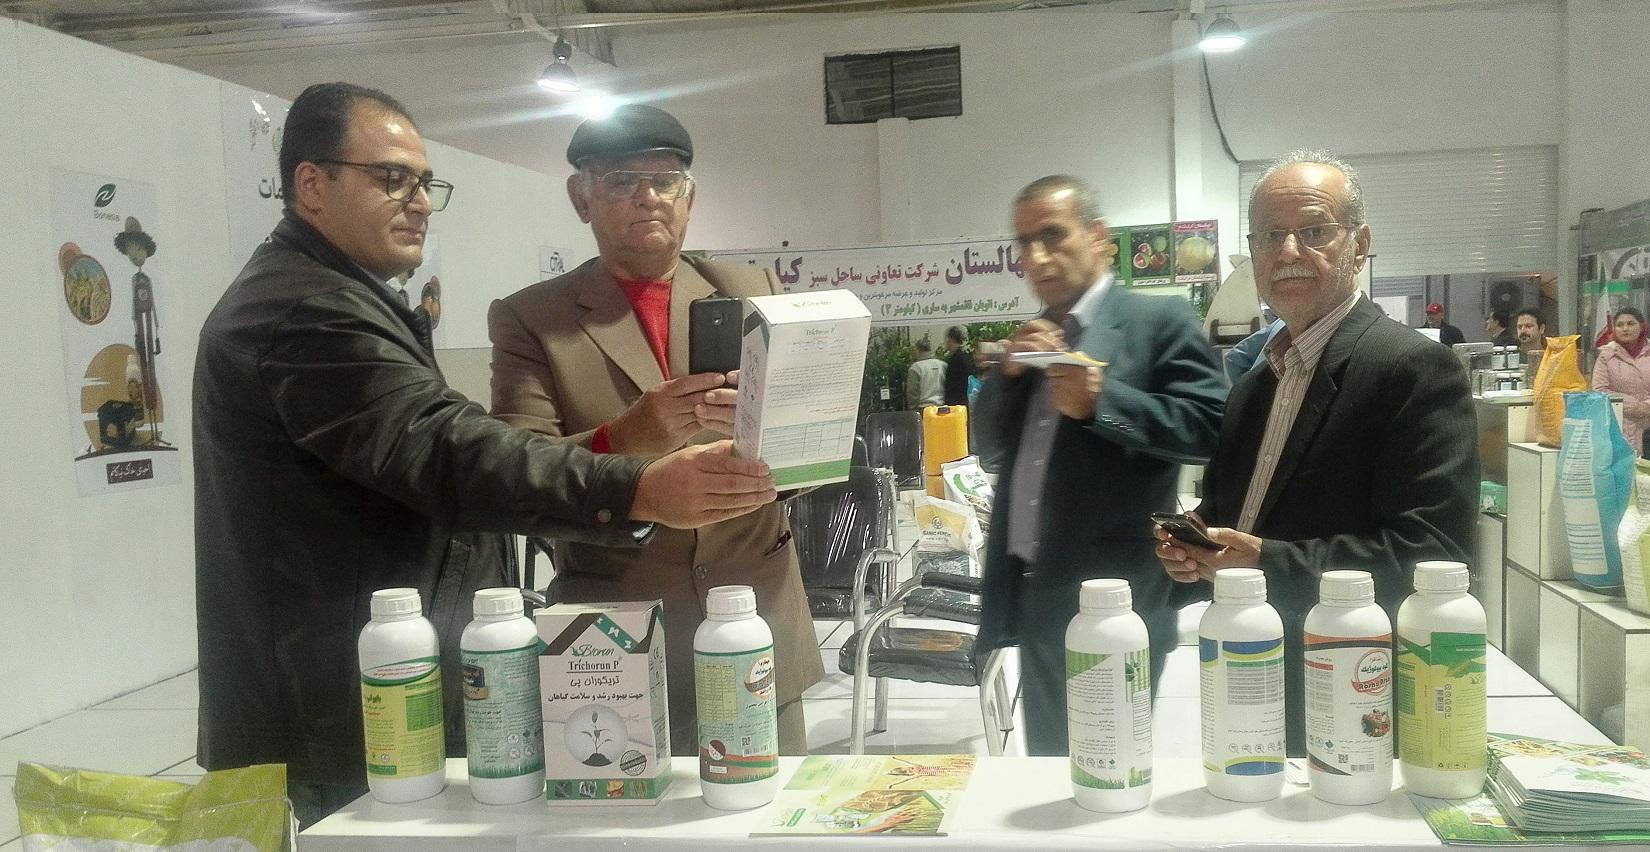 Specialized exhibition of fertilizers, pesticides, seedling, and agricultural inputs in Mazandaran Province